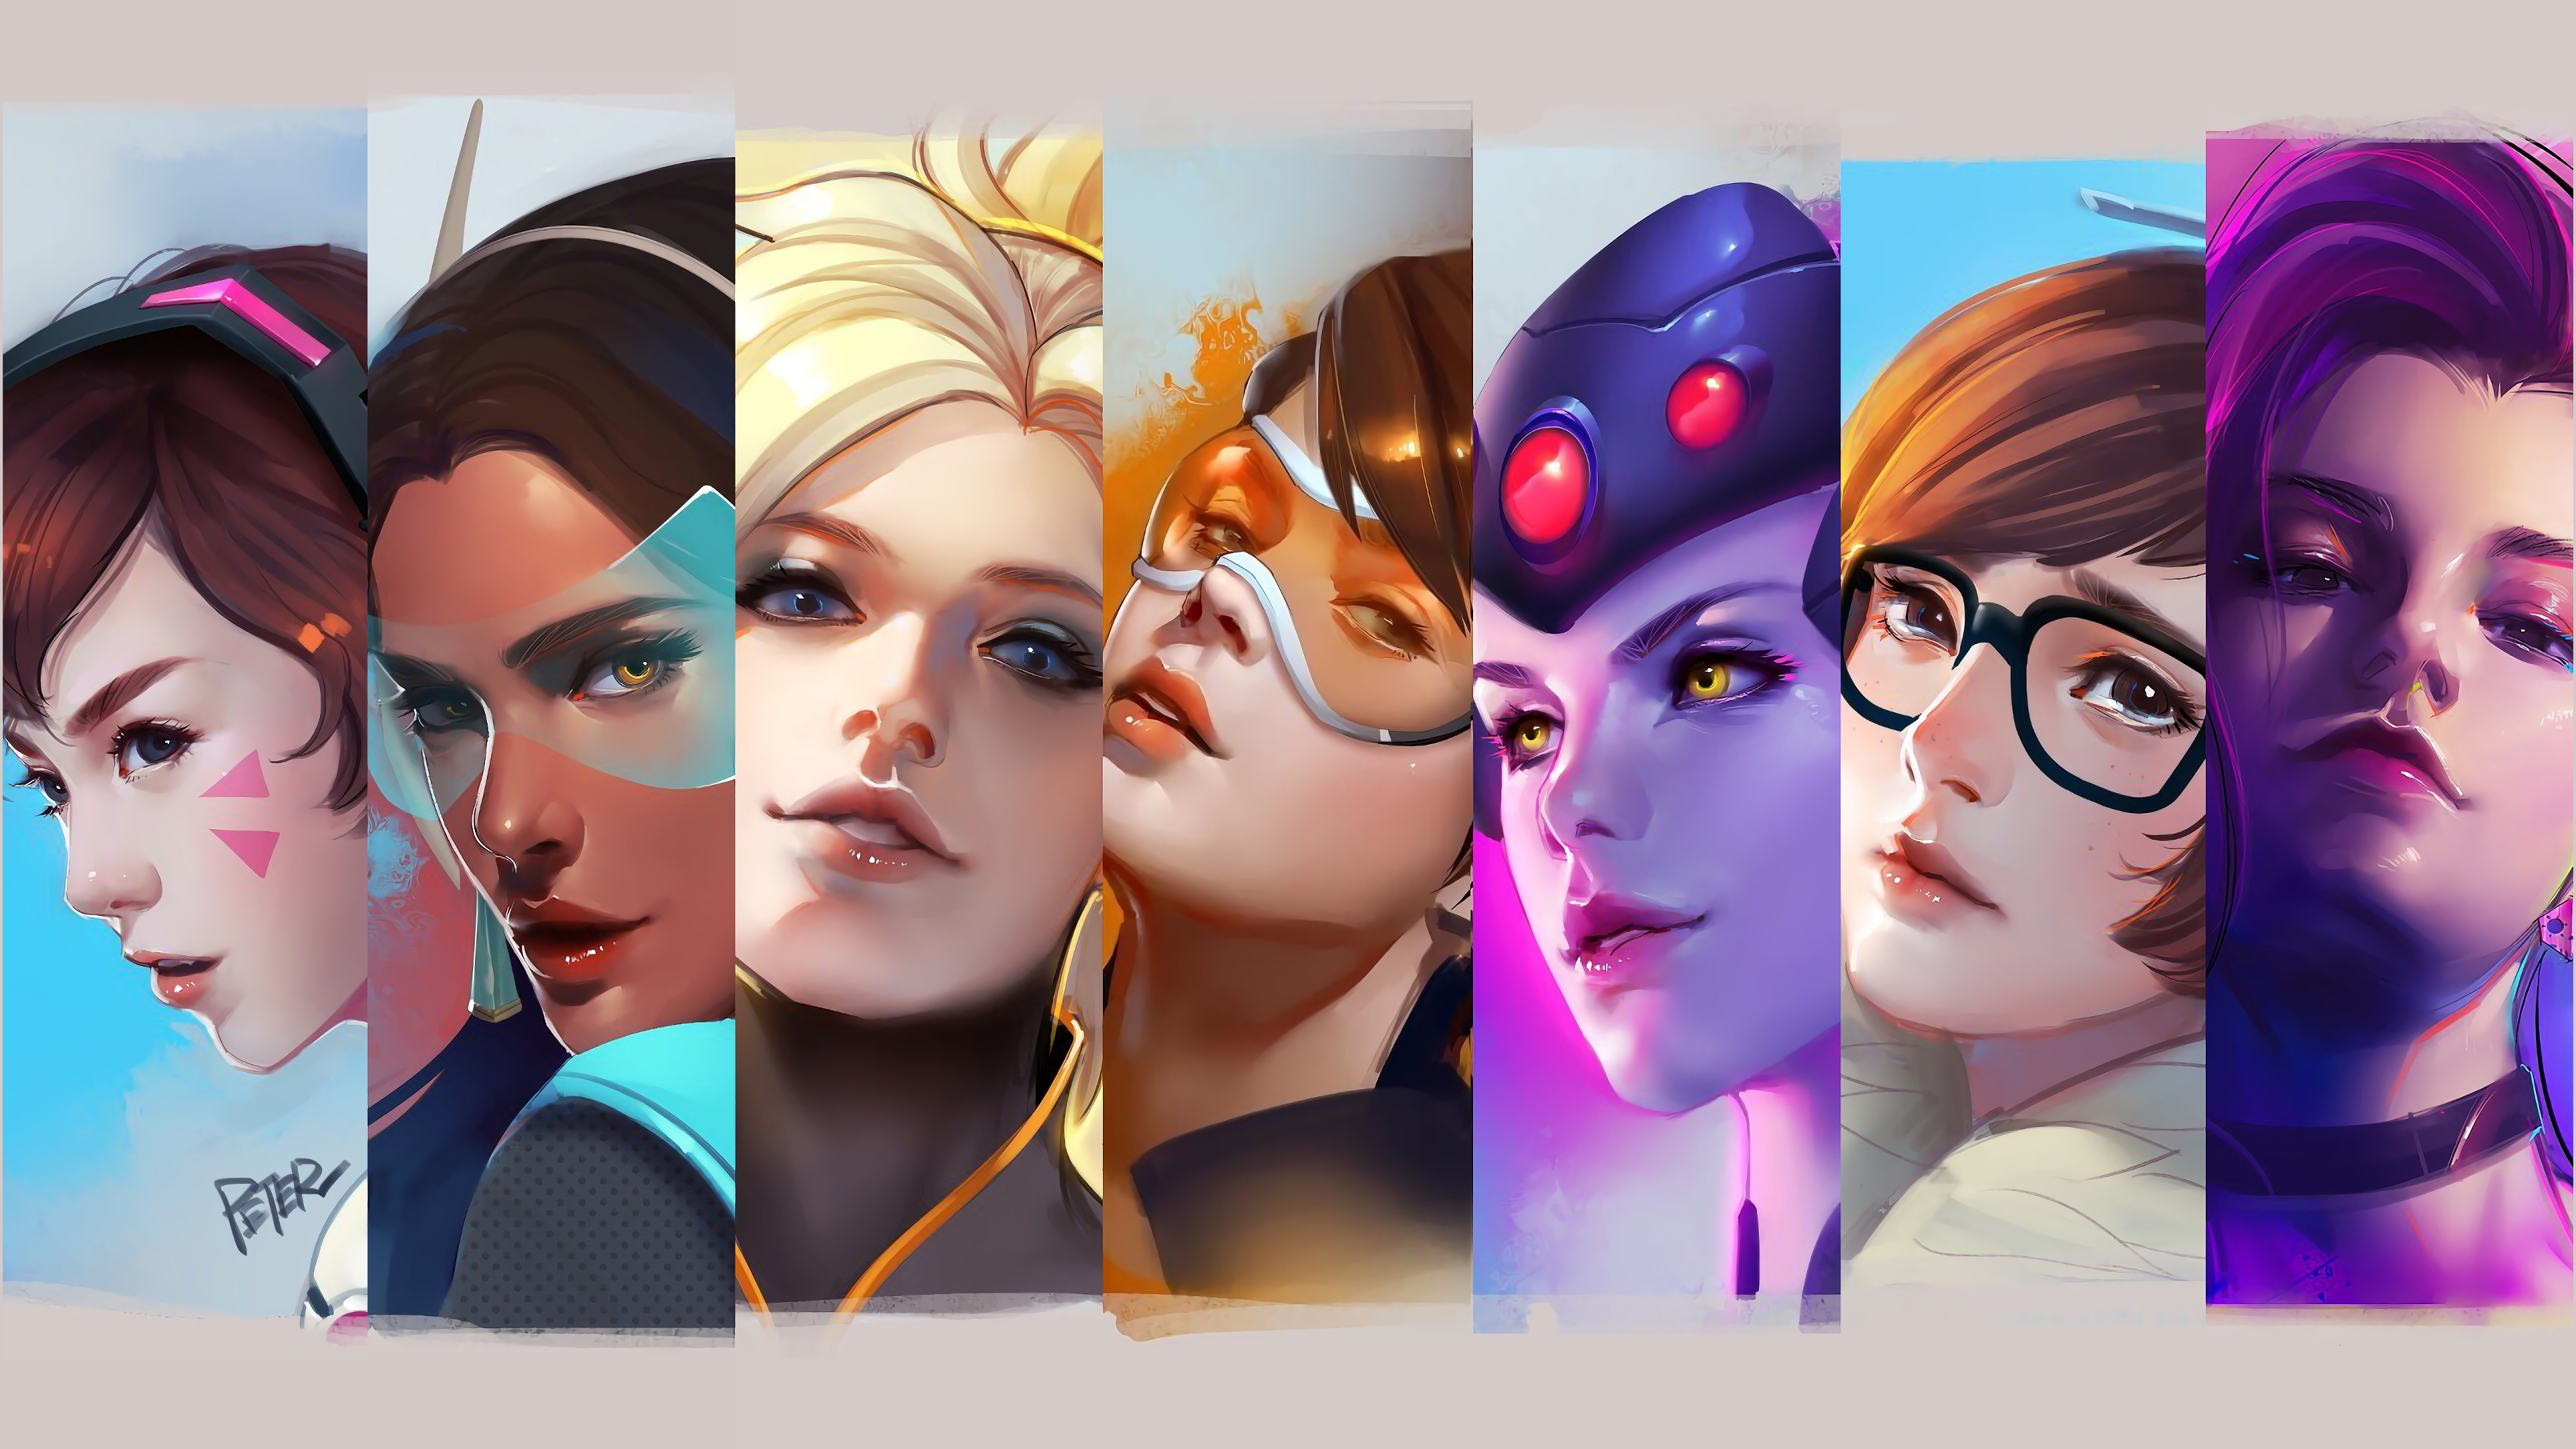 Overwatch Female Heroes 4K5802411098 - Overwatch Female Heroes 4K - Overwatch, Heroes, Female, 2018